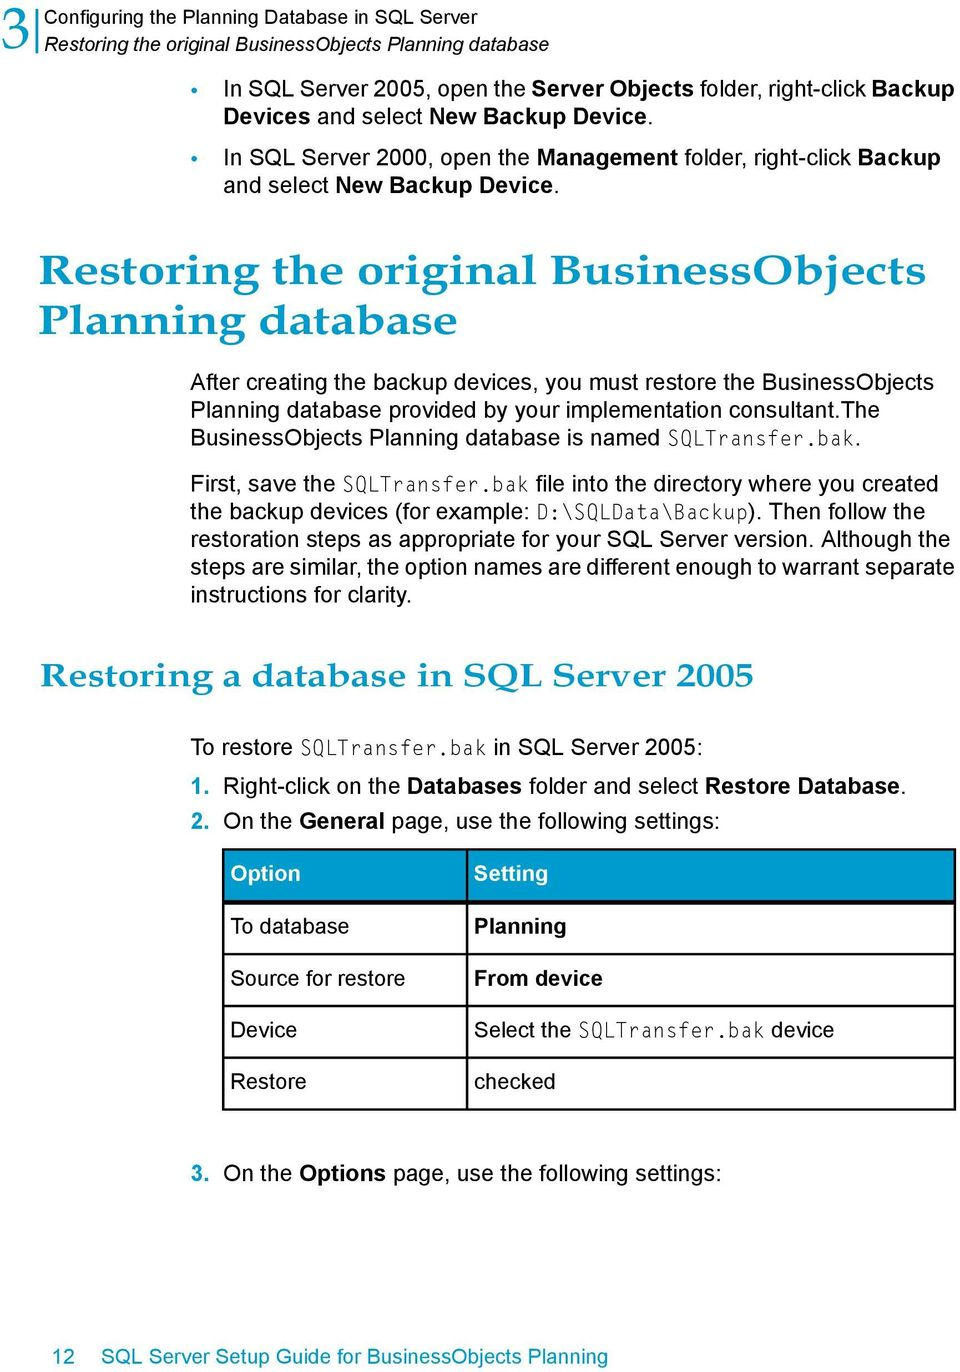 Restoring the original BusinessObjects Planning database After creating the backup devices, you must restore the BusinessObjects Planning database provided by your implementation consultant.